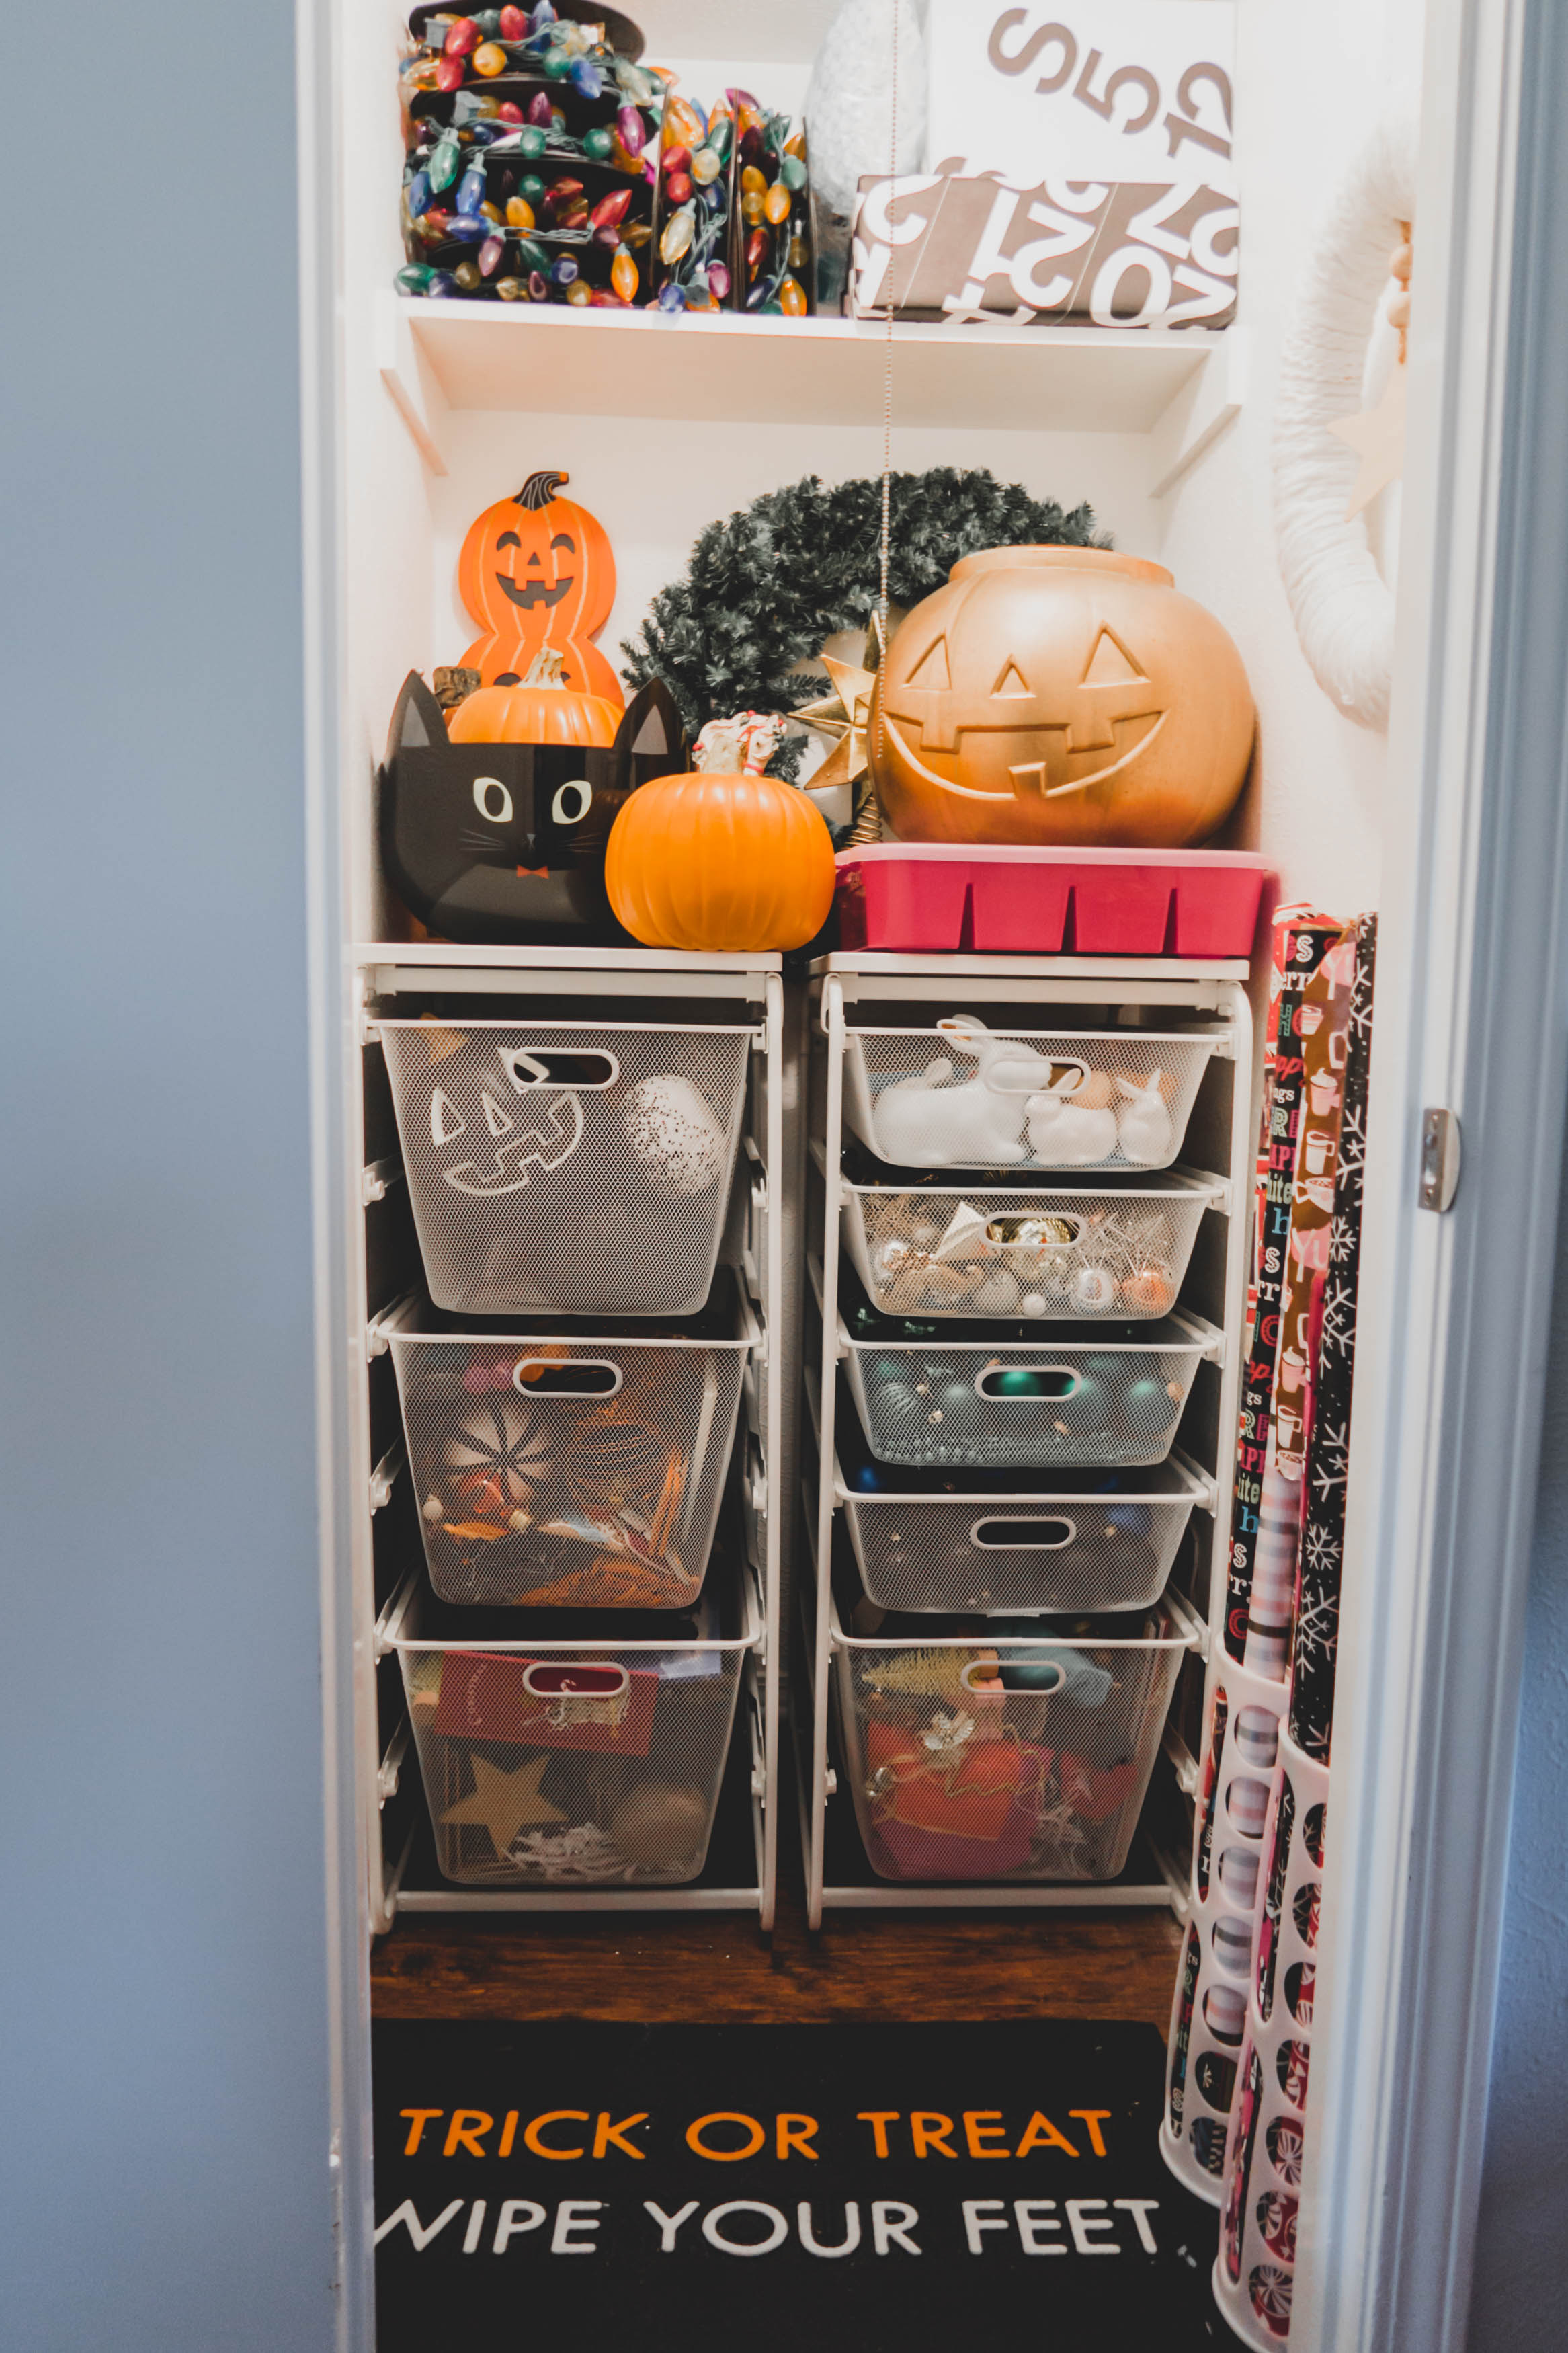 ikea-holiday-closet=storage-2.jpg